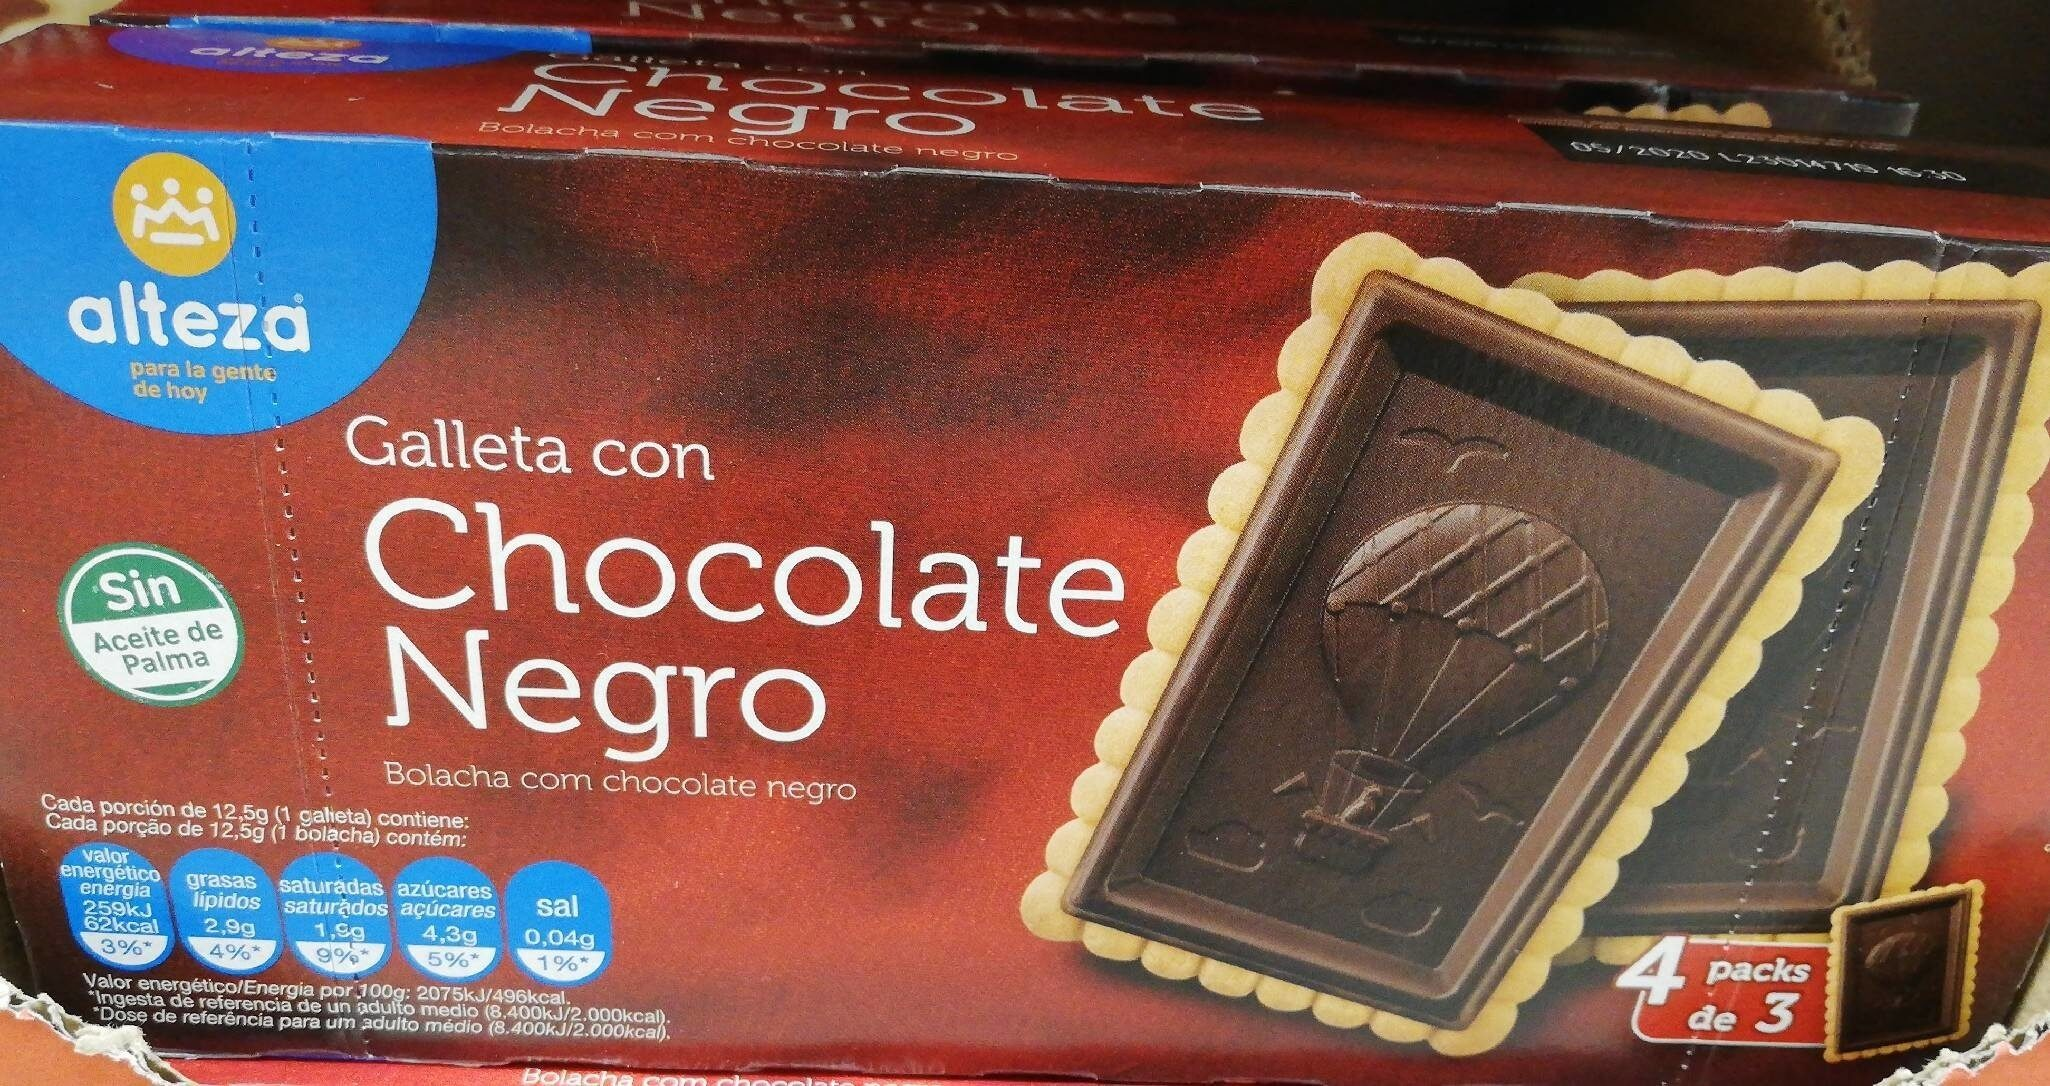 Galleta con Chocolate Negro - Product - es